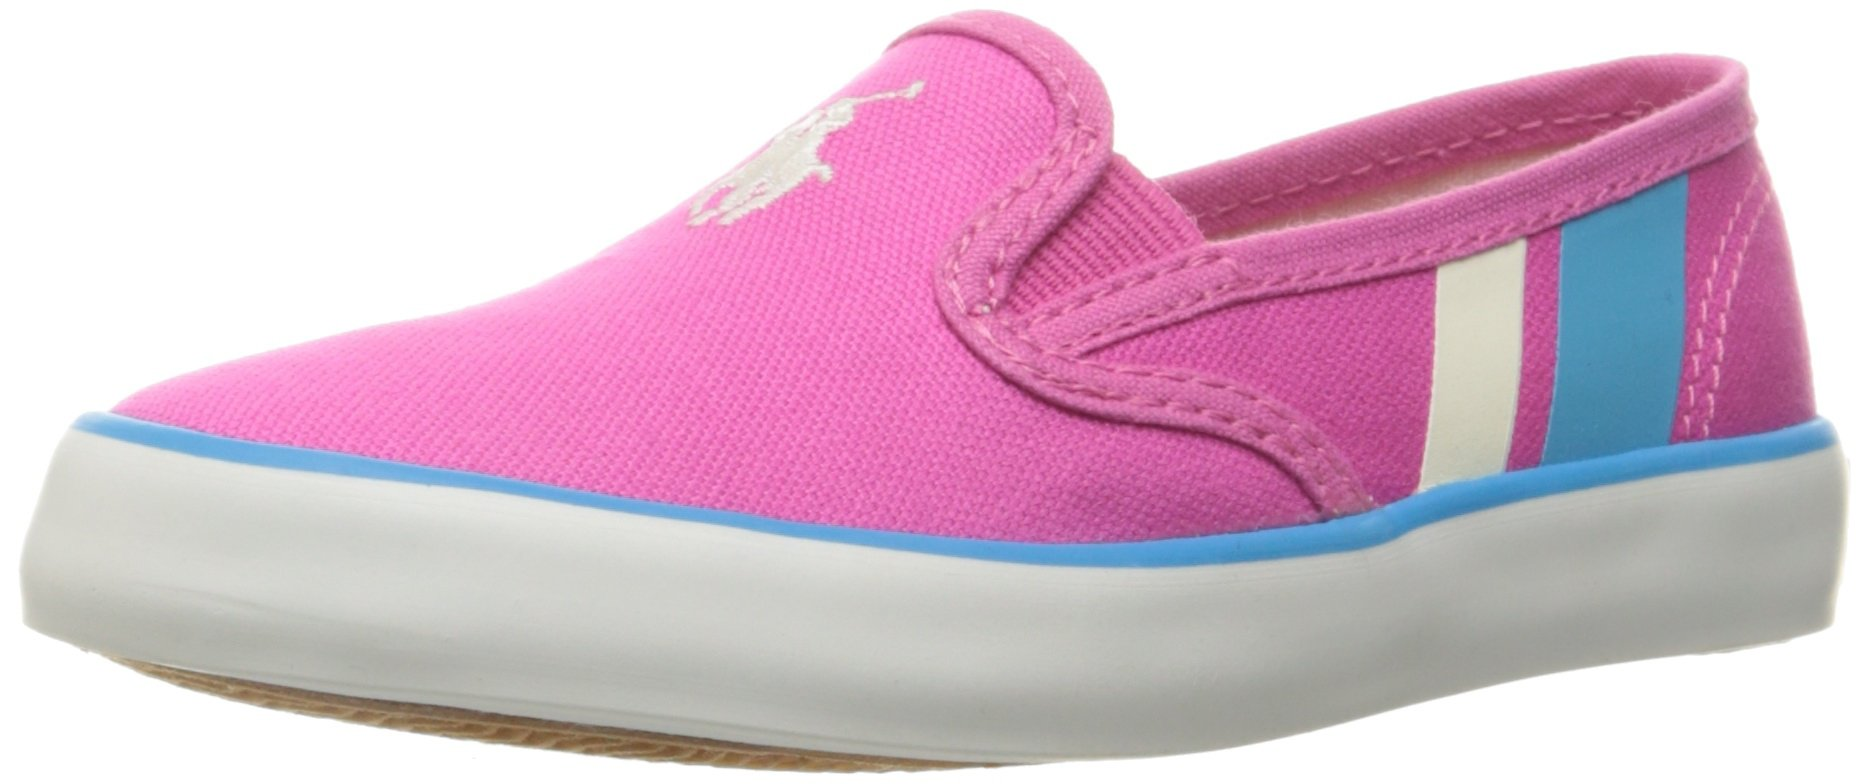 Polo Ralph Lauren Kids Kids' Piper Fch CVS W/WHT PP-Teal Loafer, Fuchsia Canvas/White Pony Player/Teal, 5 M US Big Kid